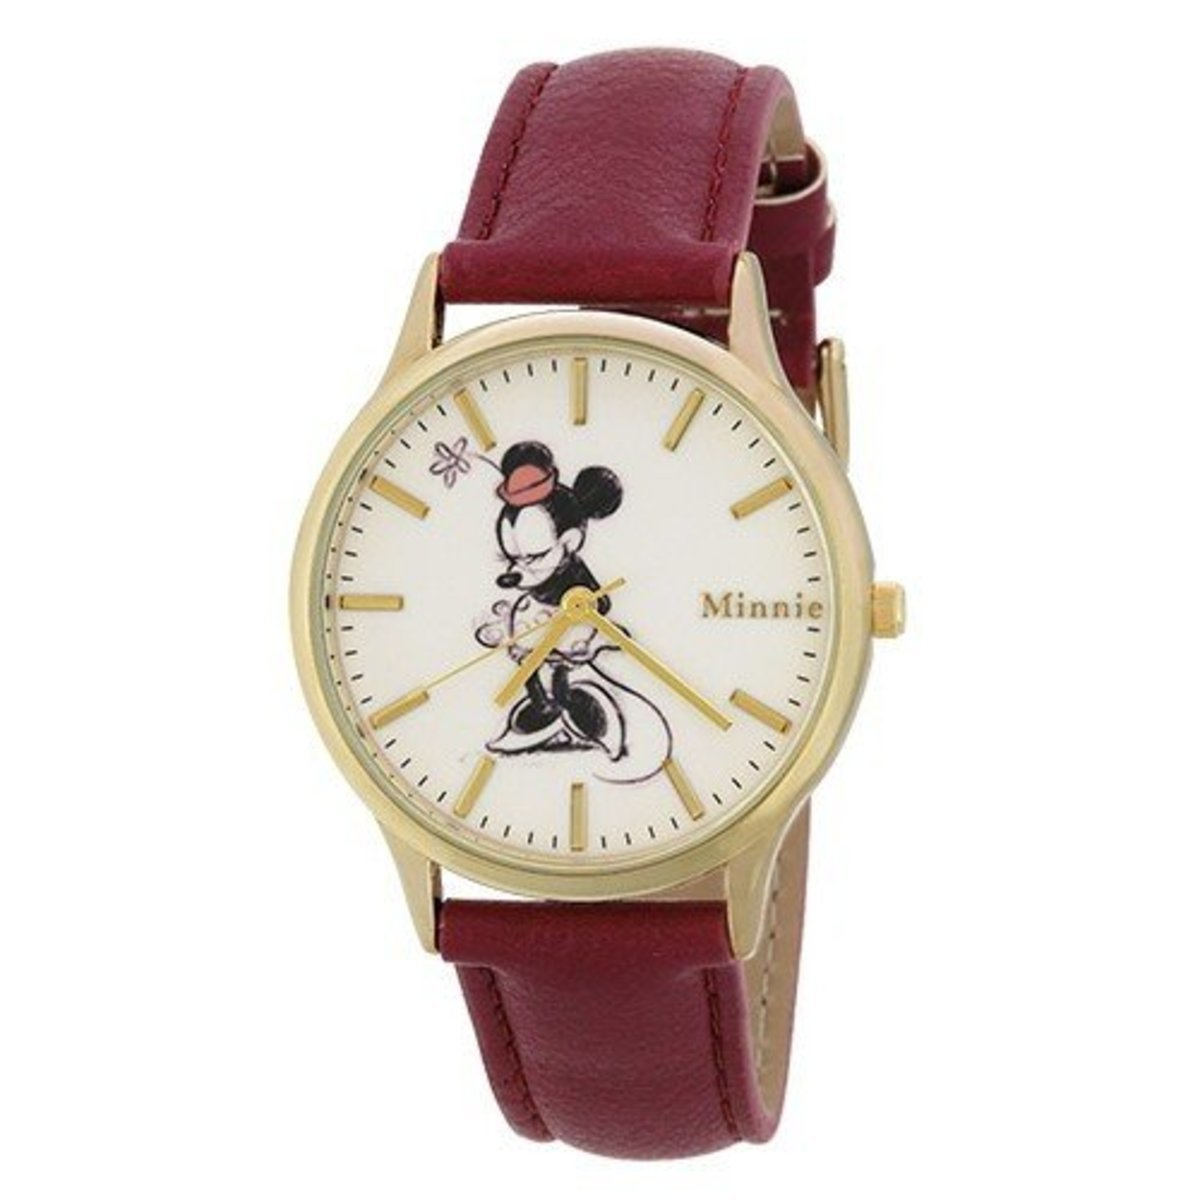 Disney leather watch Minnie (Made in Japan) 4937996374005